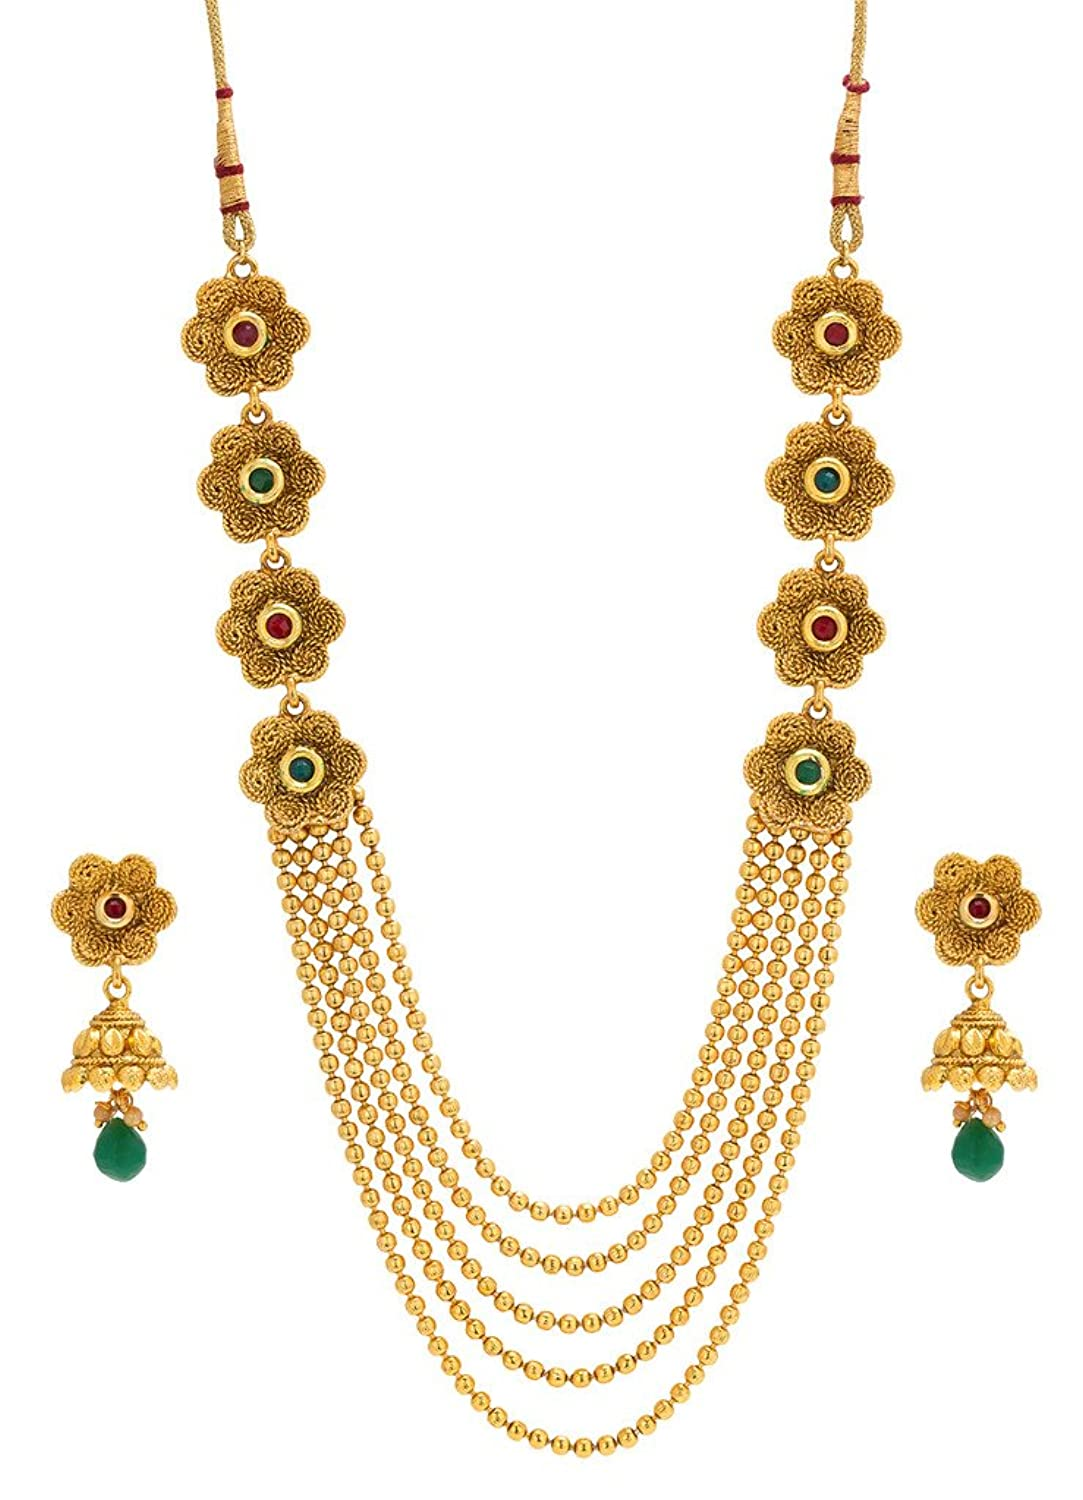 Bindhani Indian Bollywood Bridal Wedding Long Kundan Gold Plated Necklace Jewelry Set For Women